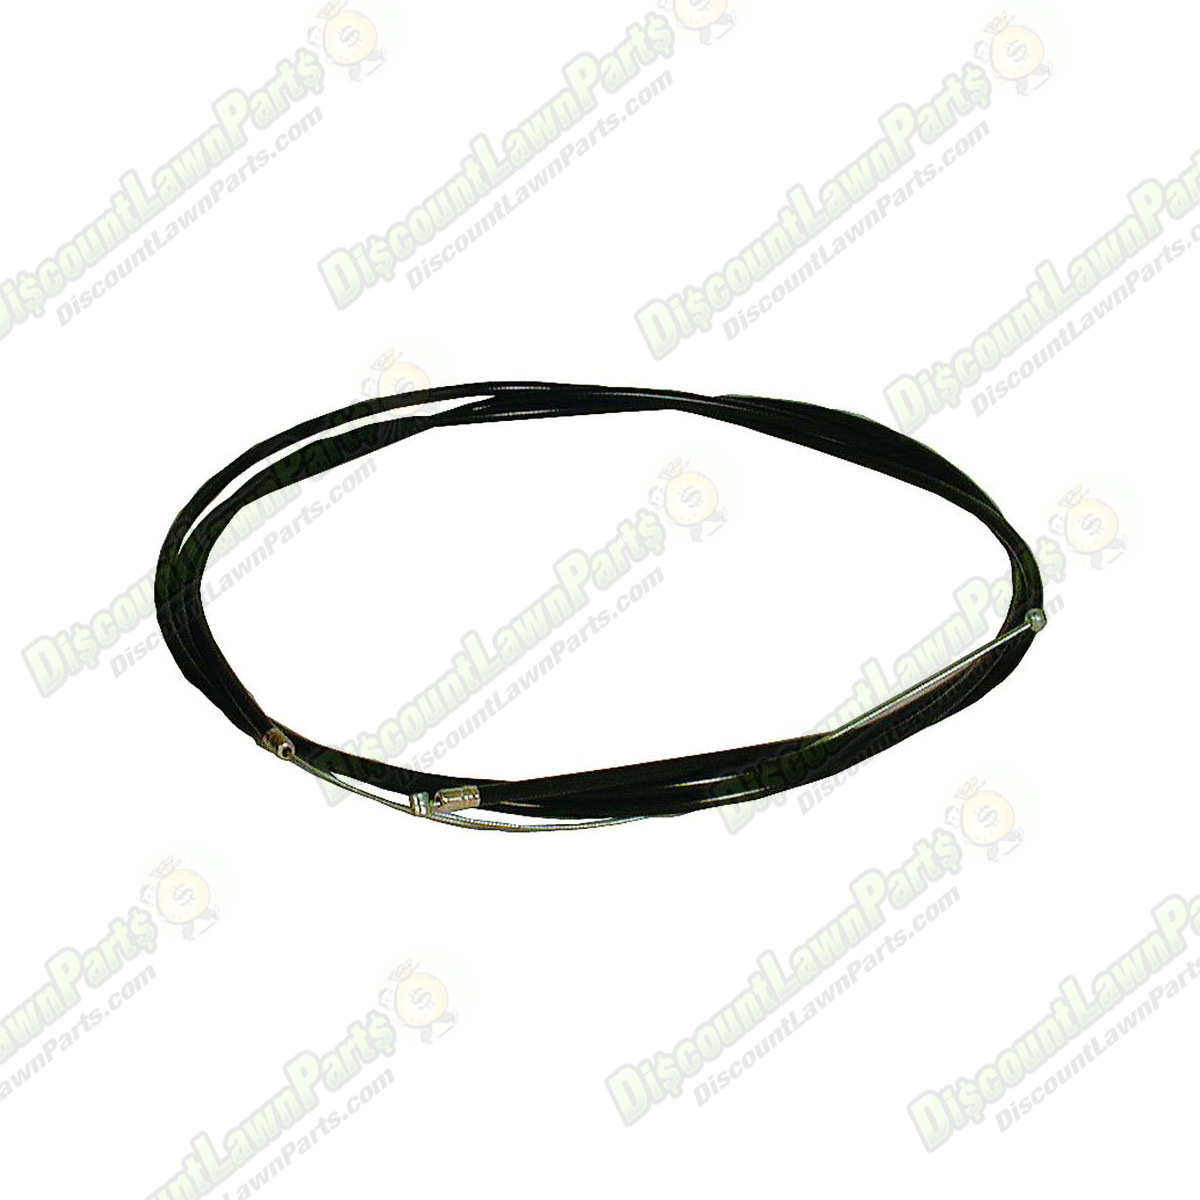 Throttle Cable 100 Inch